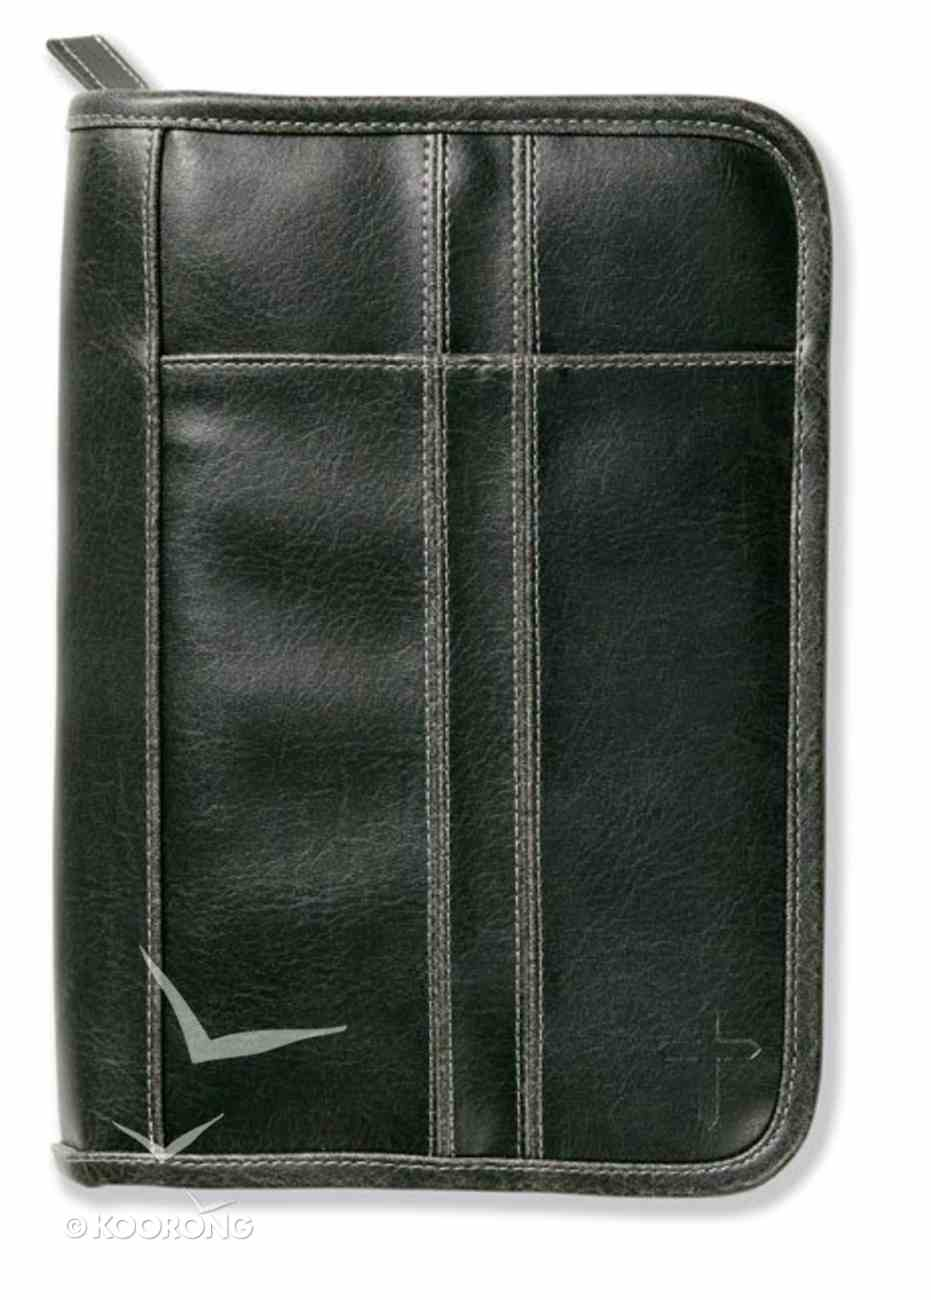 Bible Cover Distressed Leather-Look Black Large Bible Cover